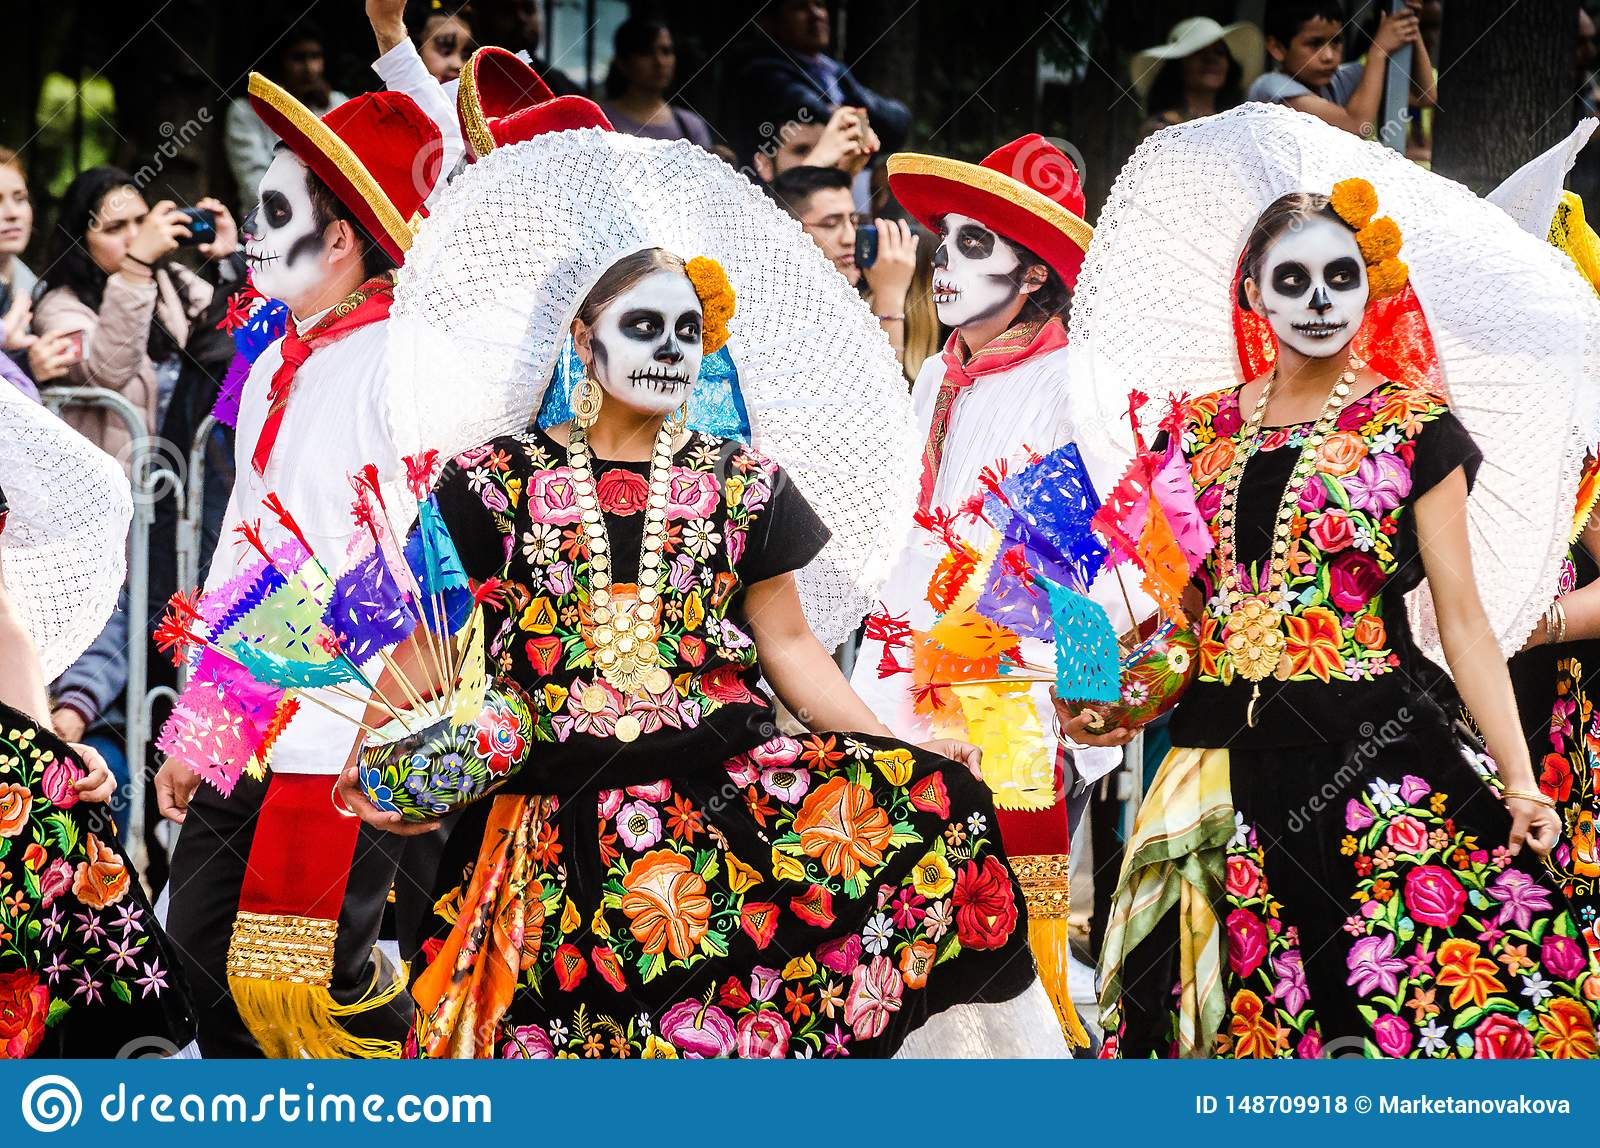 Mexico City Mexico October 27 2018 Celebration Of Day Of Dead Parade Editorial Stock Photo Image Of Feathers Costume 148709918